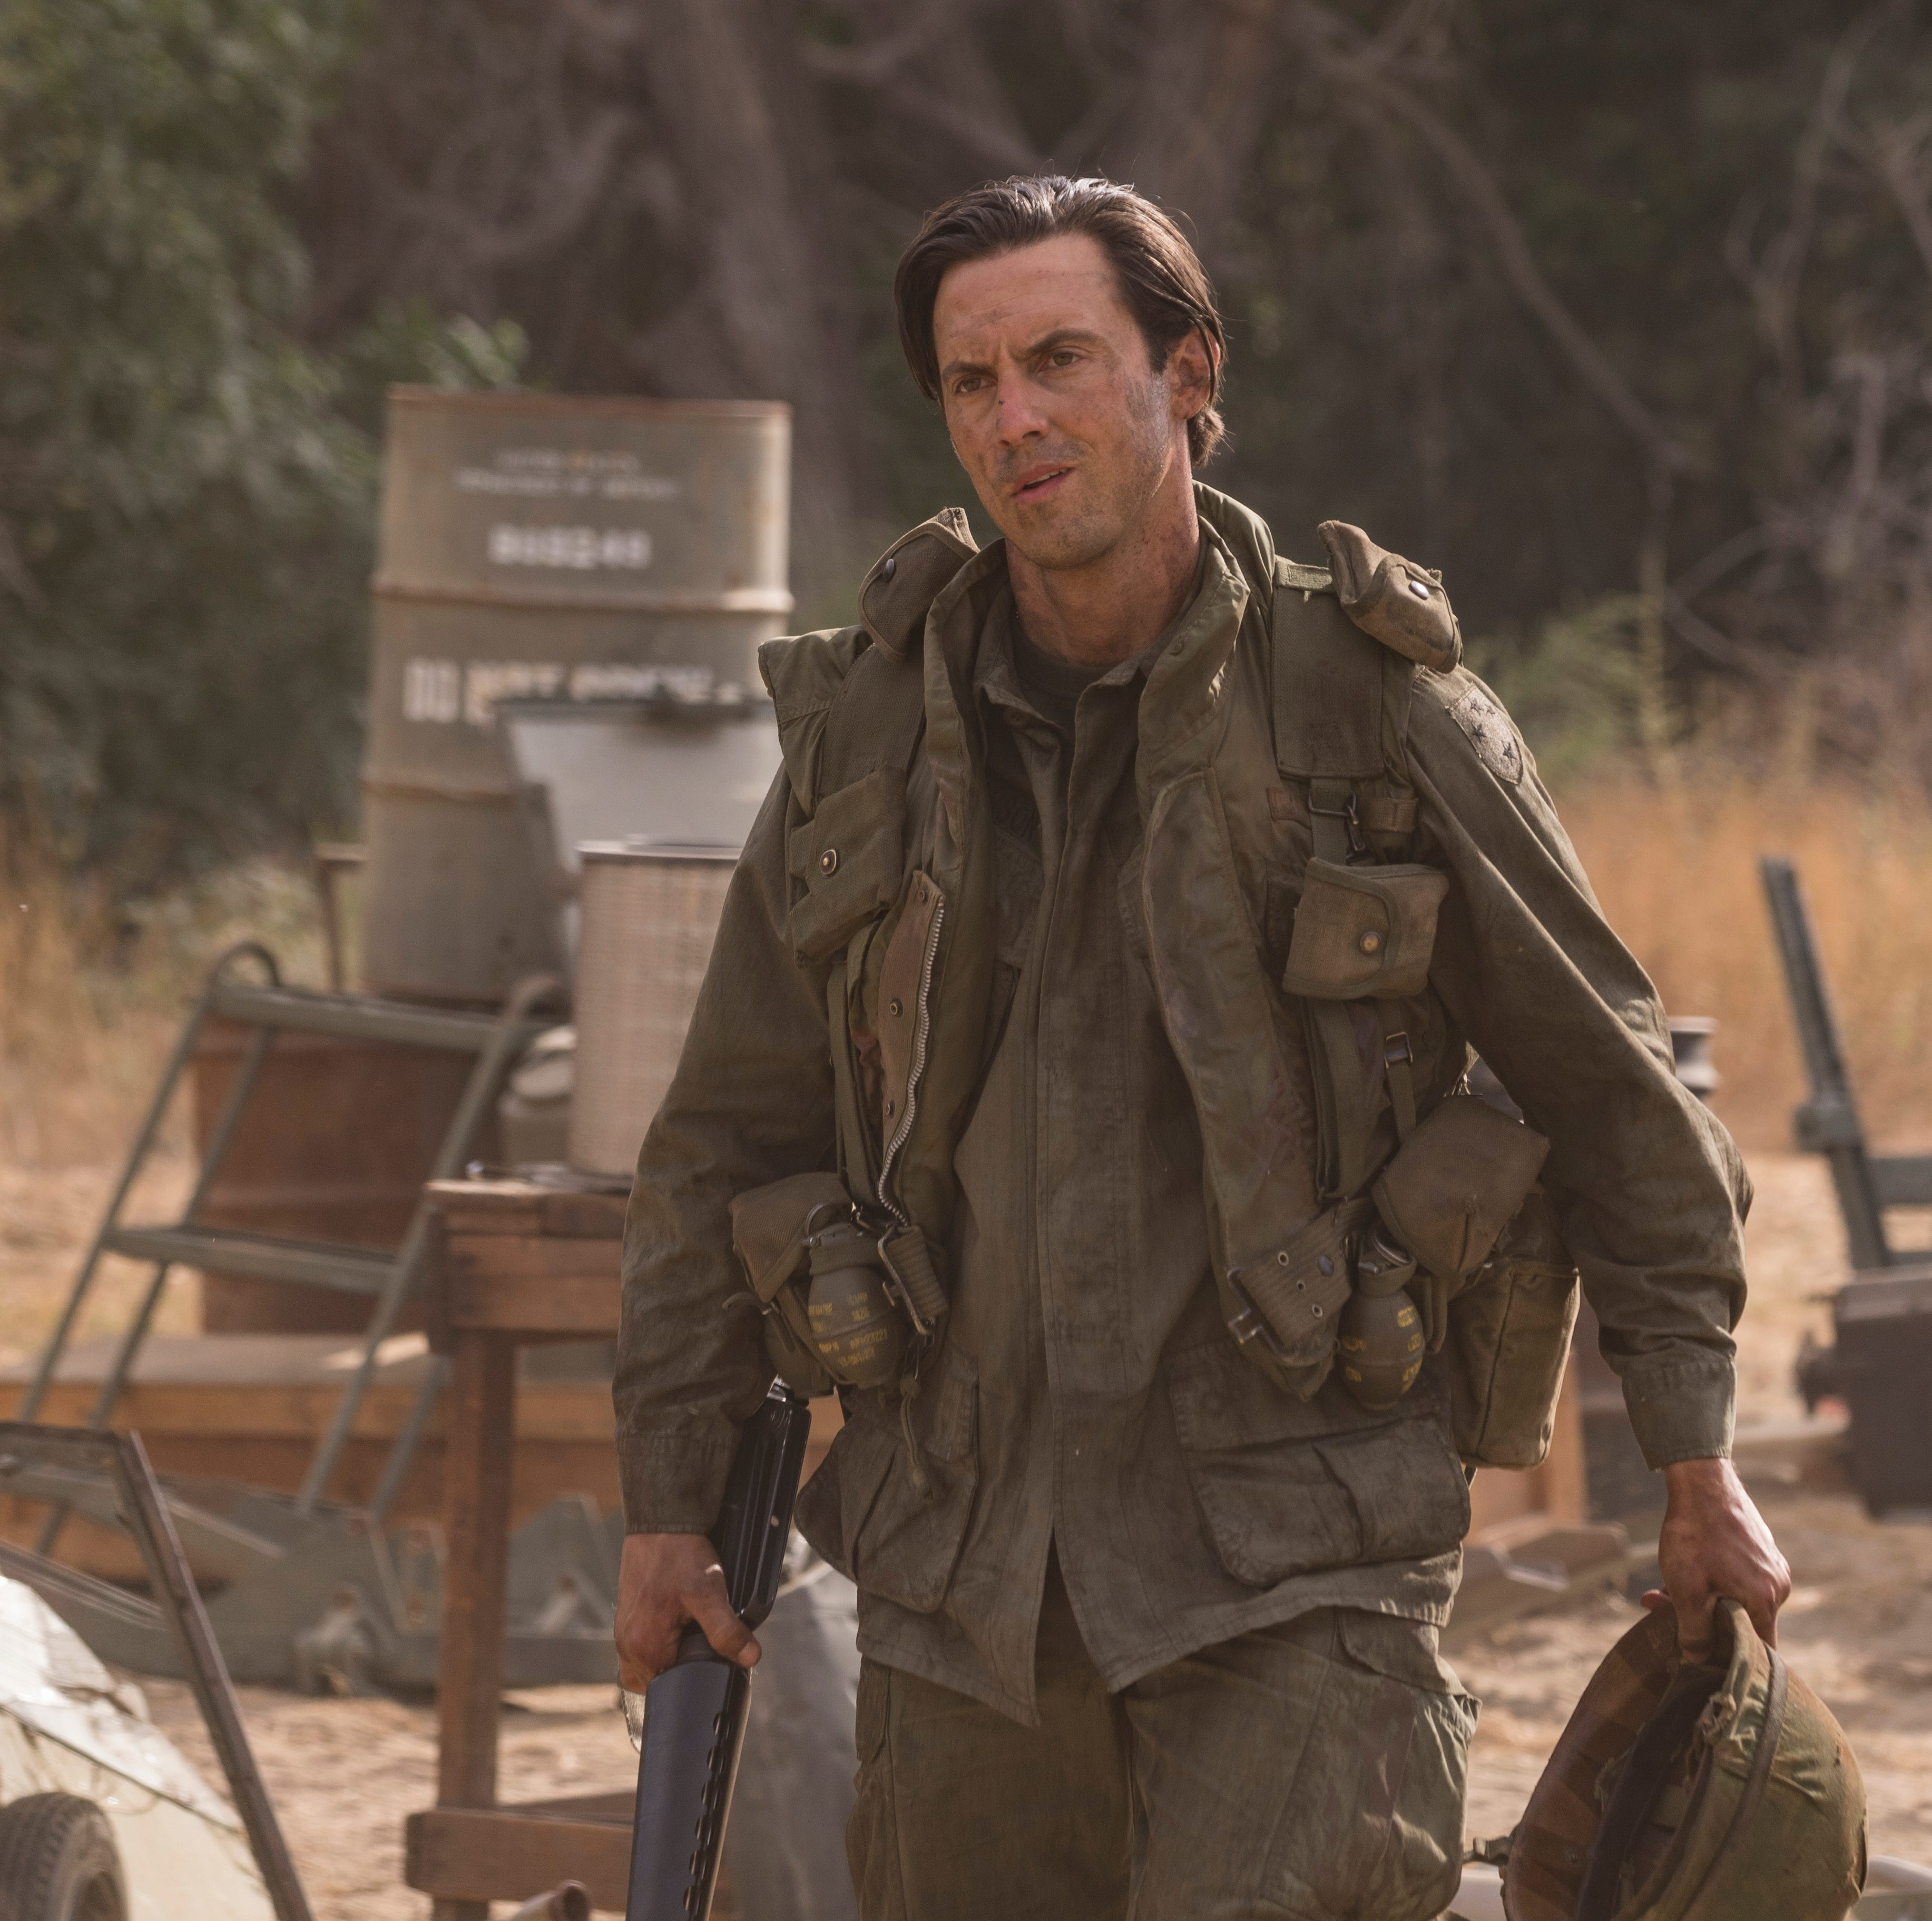 'This Is Us' heads back to Vietnam War for Jack Pearson's origin story